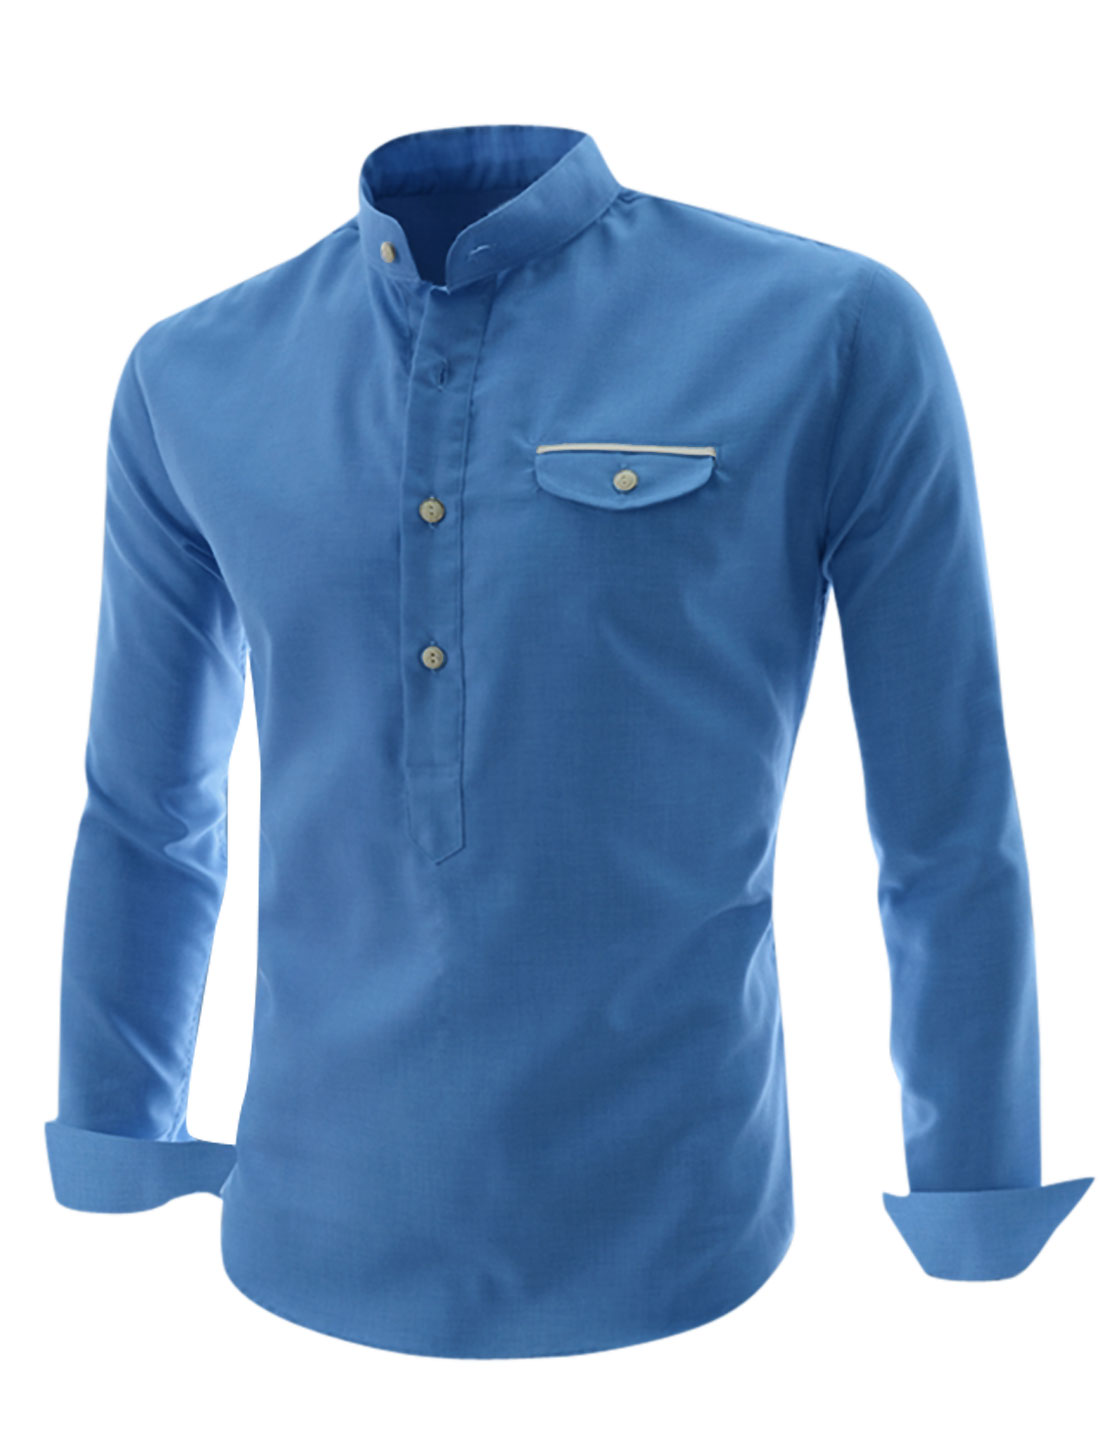 Men Stand Collar 1/2 Placket Buttons Cuffs Casual Shirt Blue M